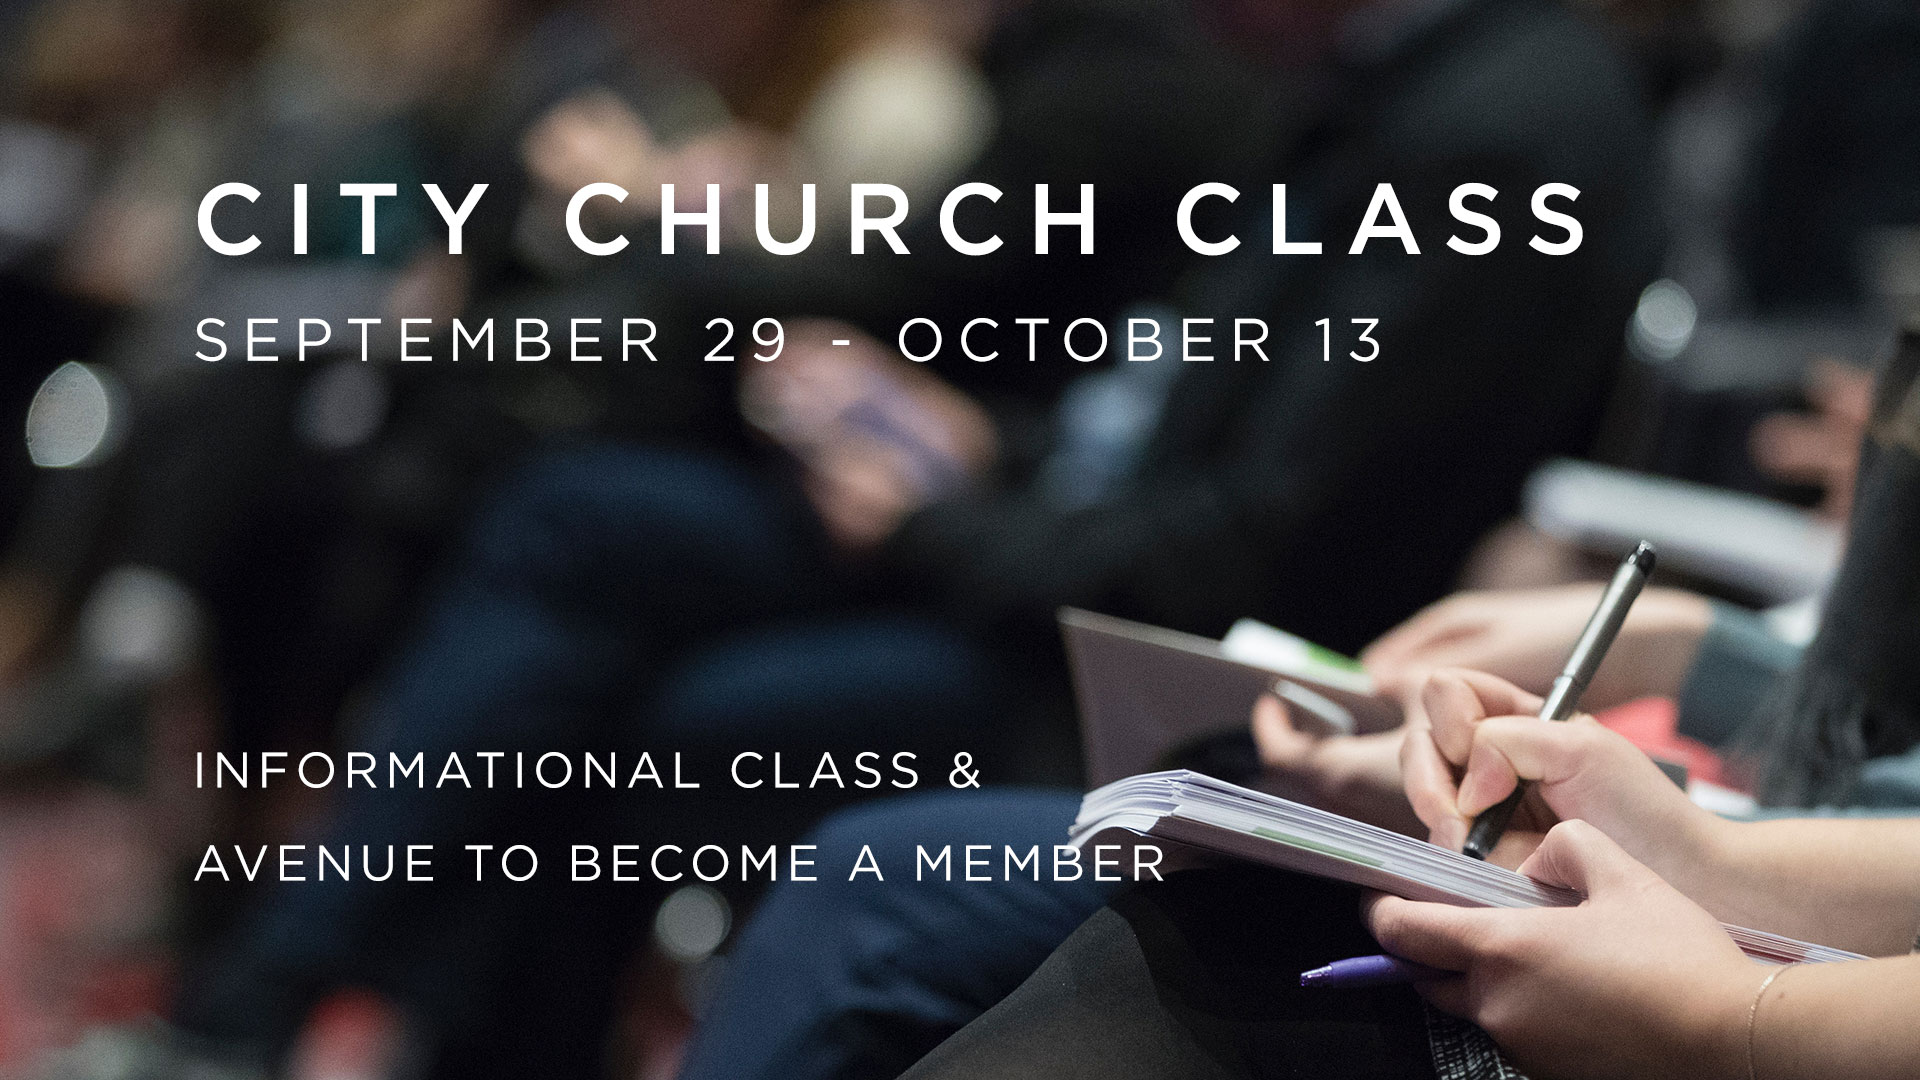 city-church-class-oct-2019-header.jpg